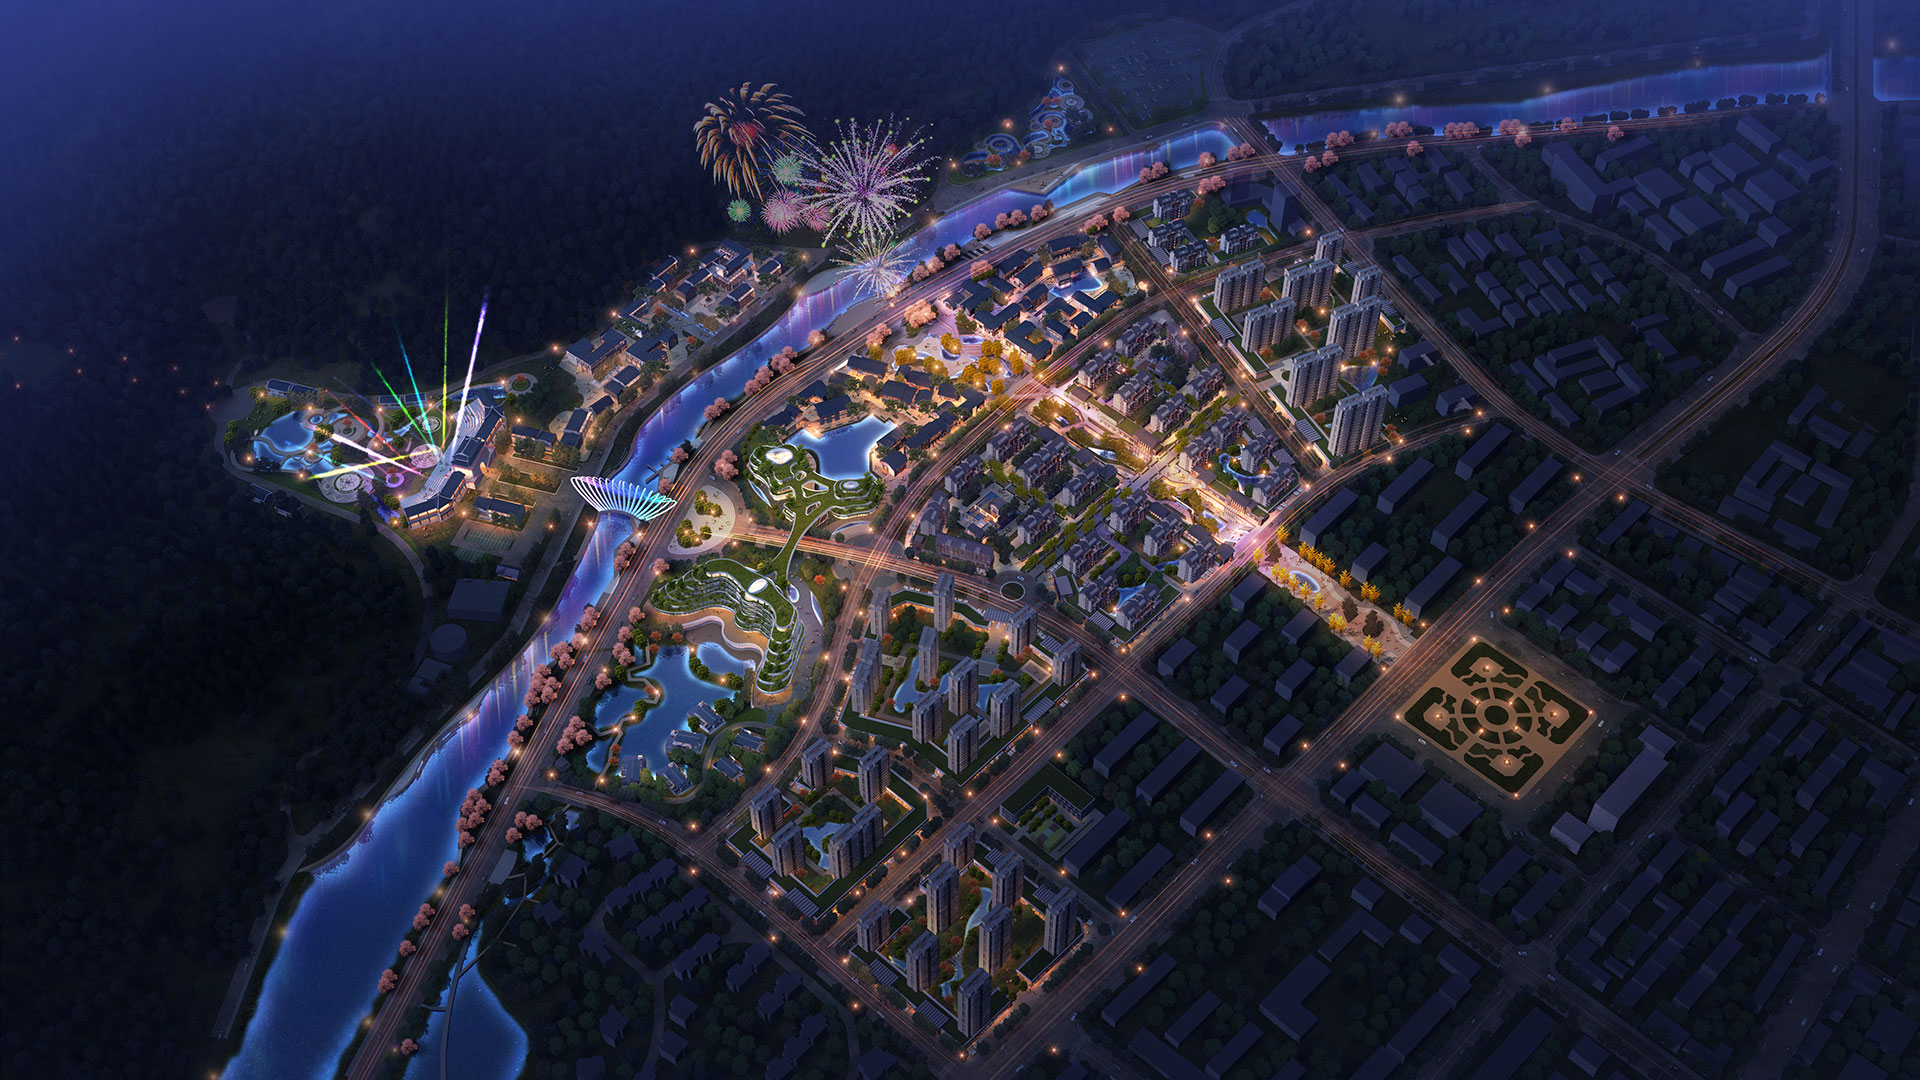 Masterplan for a new turistic destination in Hangzhou China